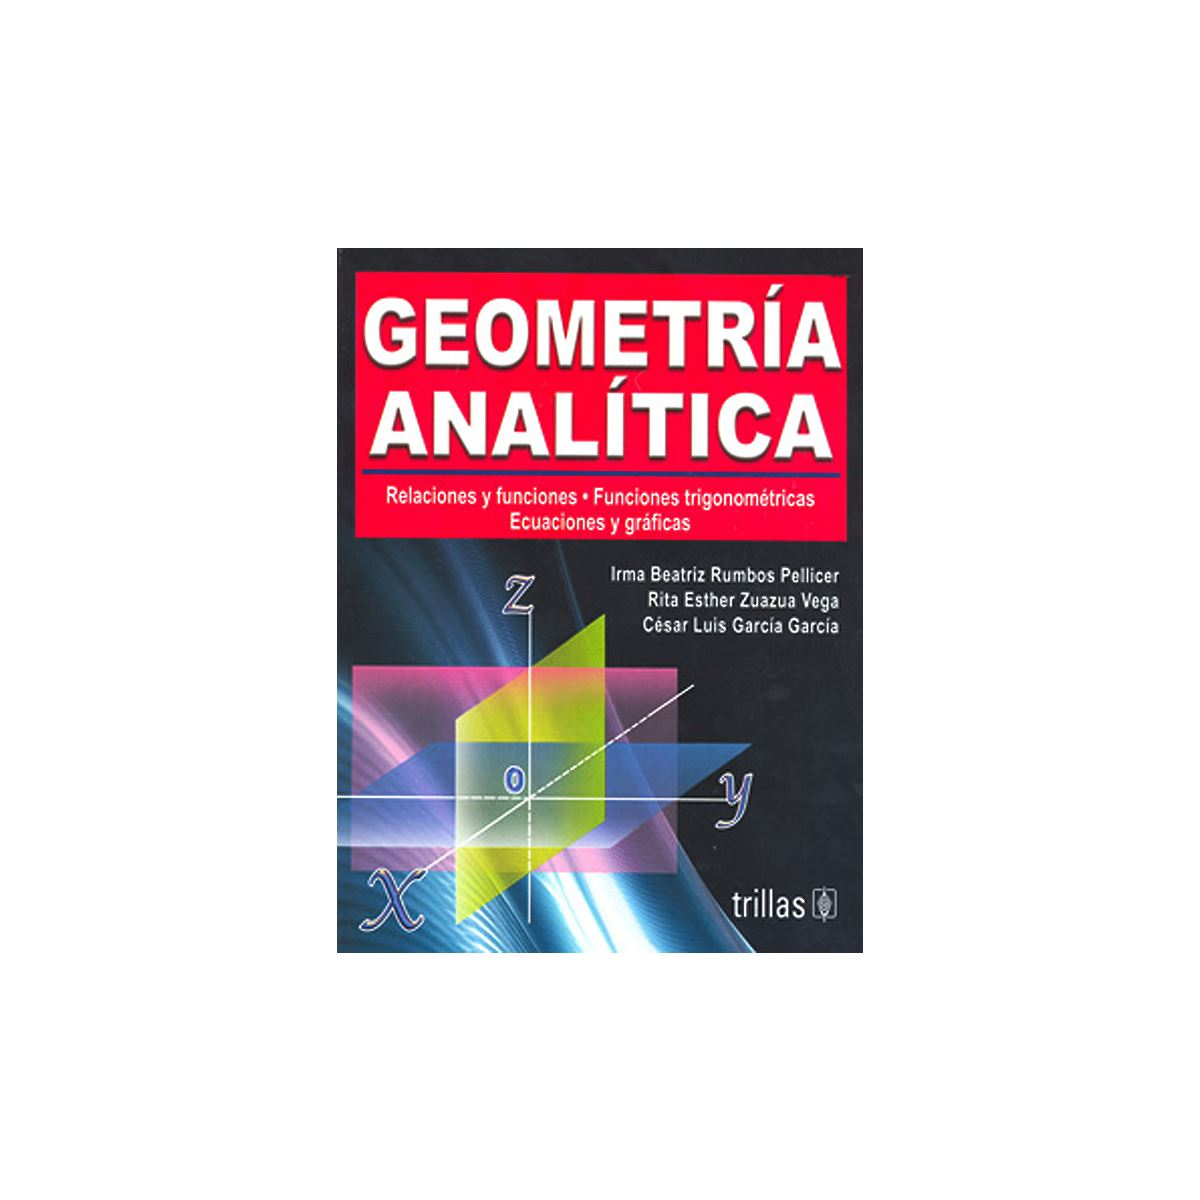 Geometria Analitica. Incluye Cd